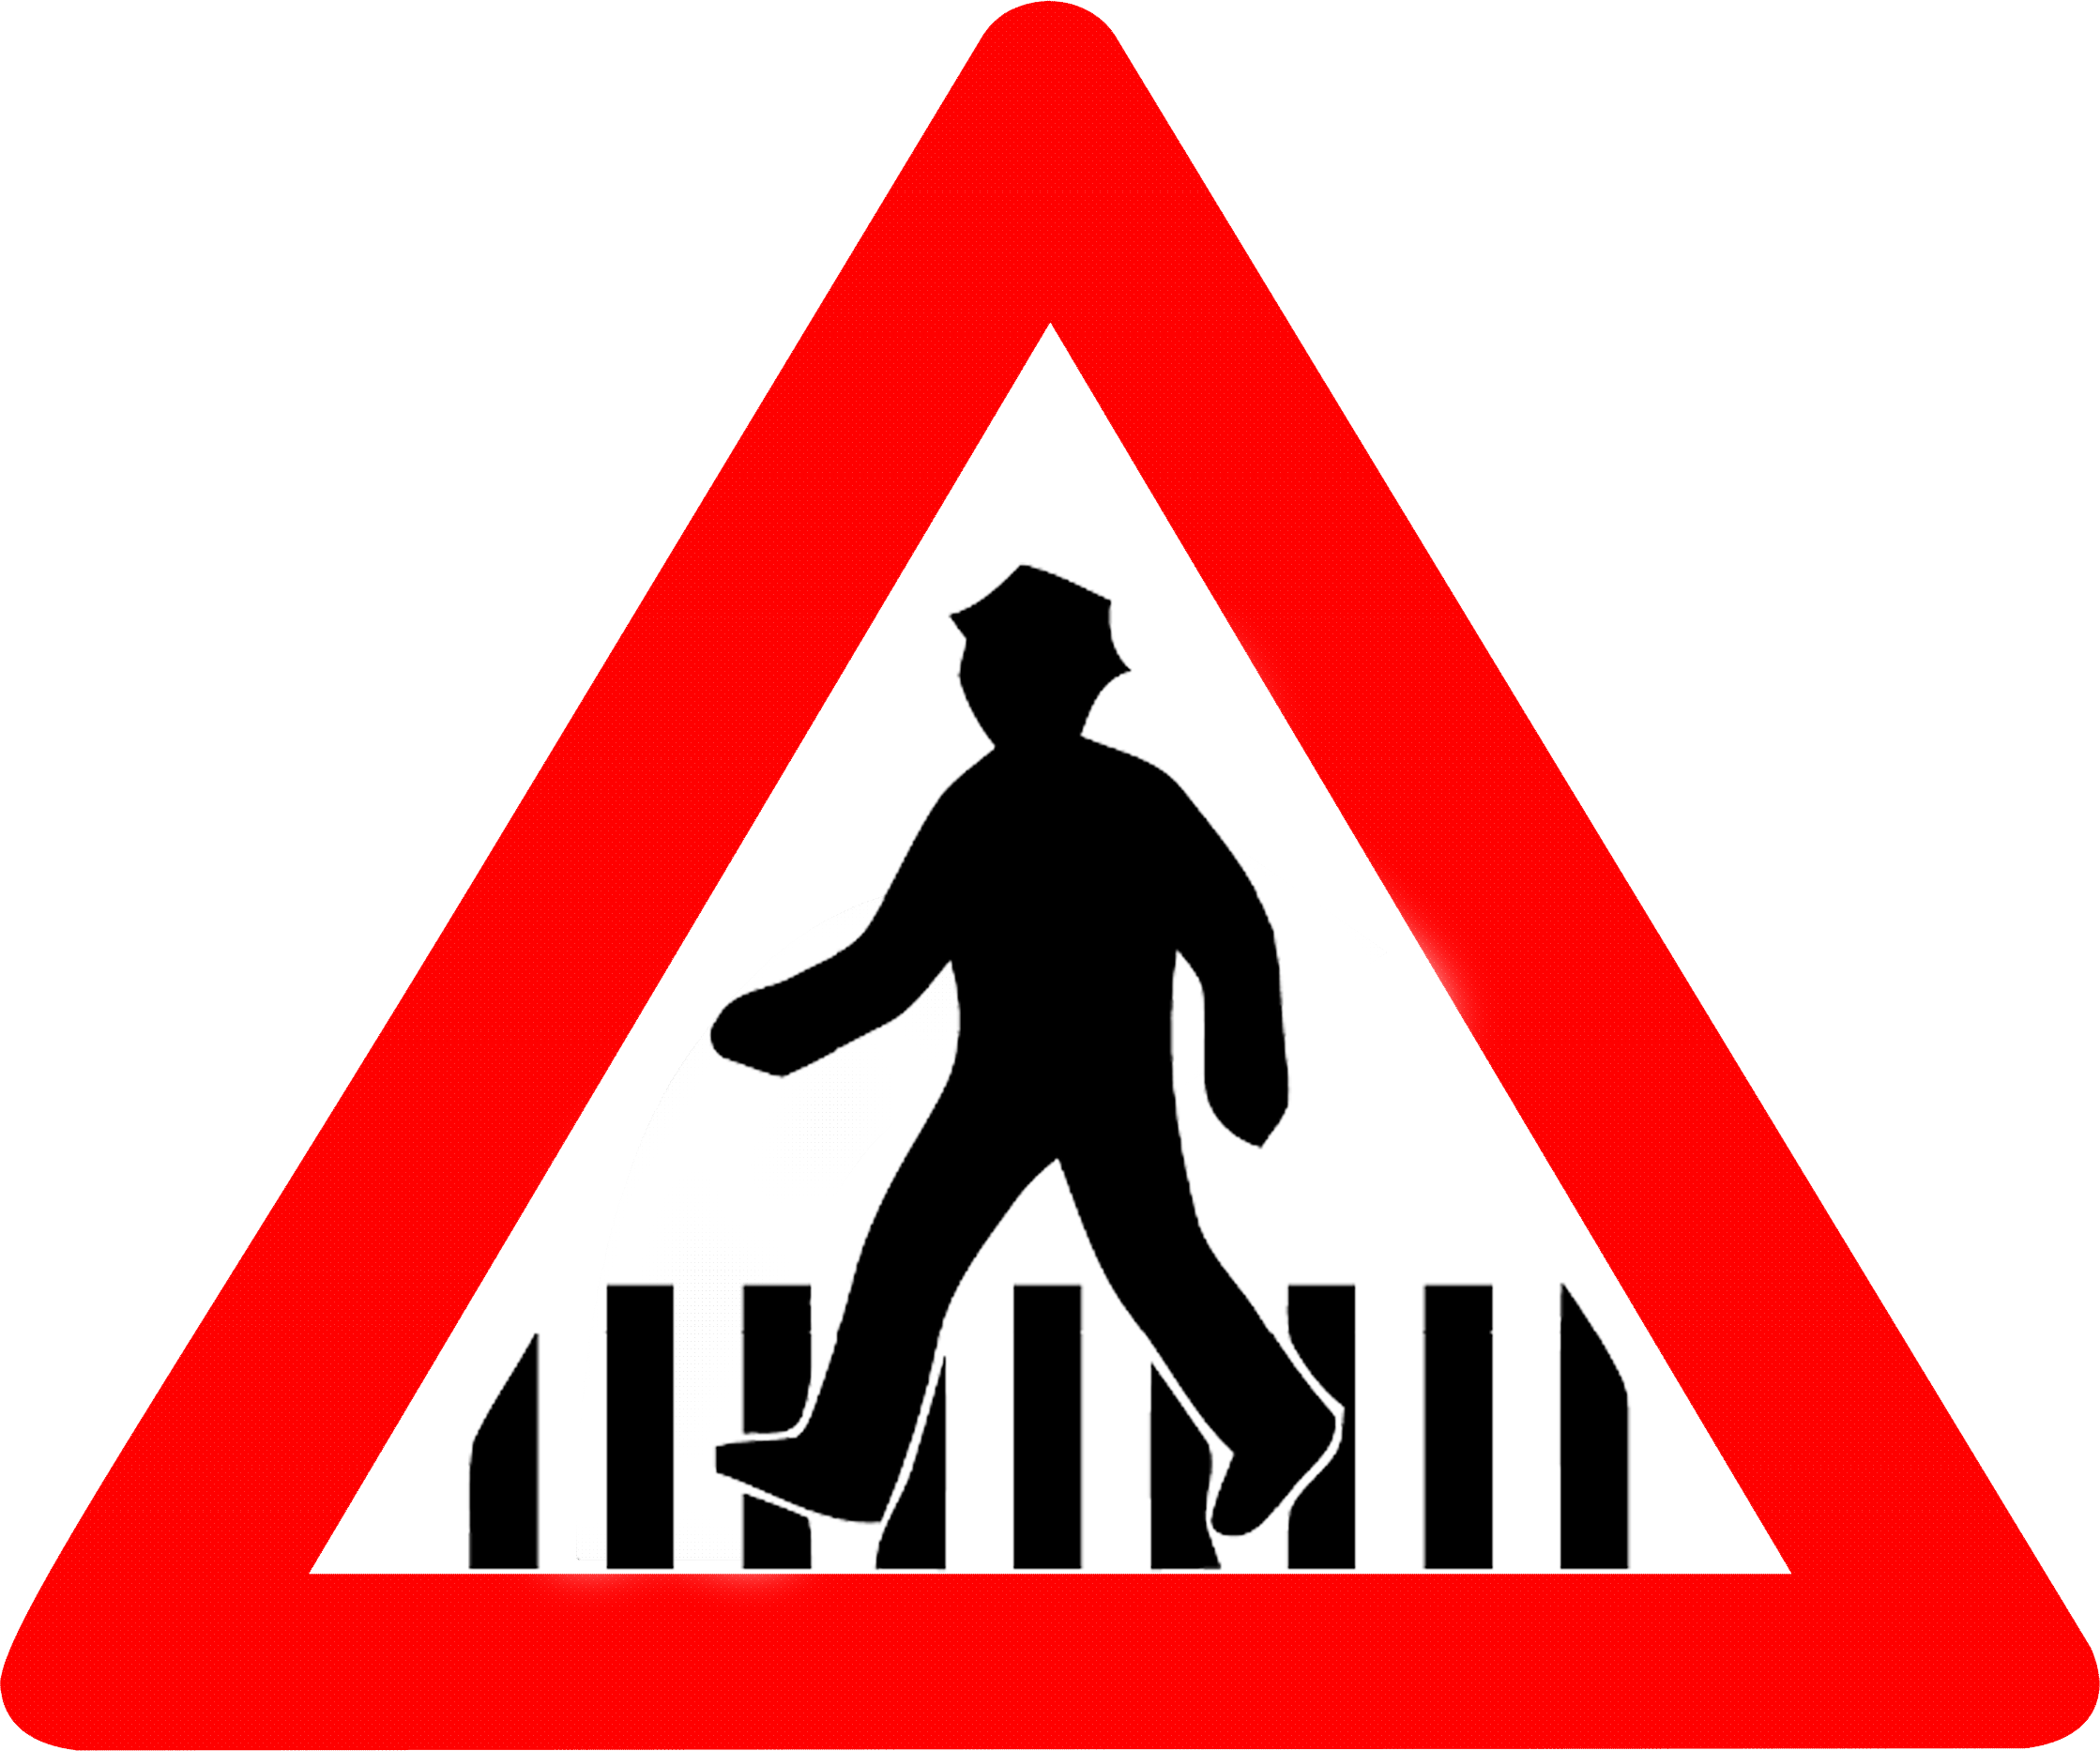 Executive officers association ahead. Clipart road narrow road